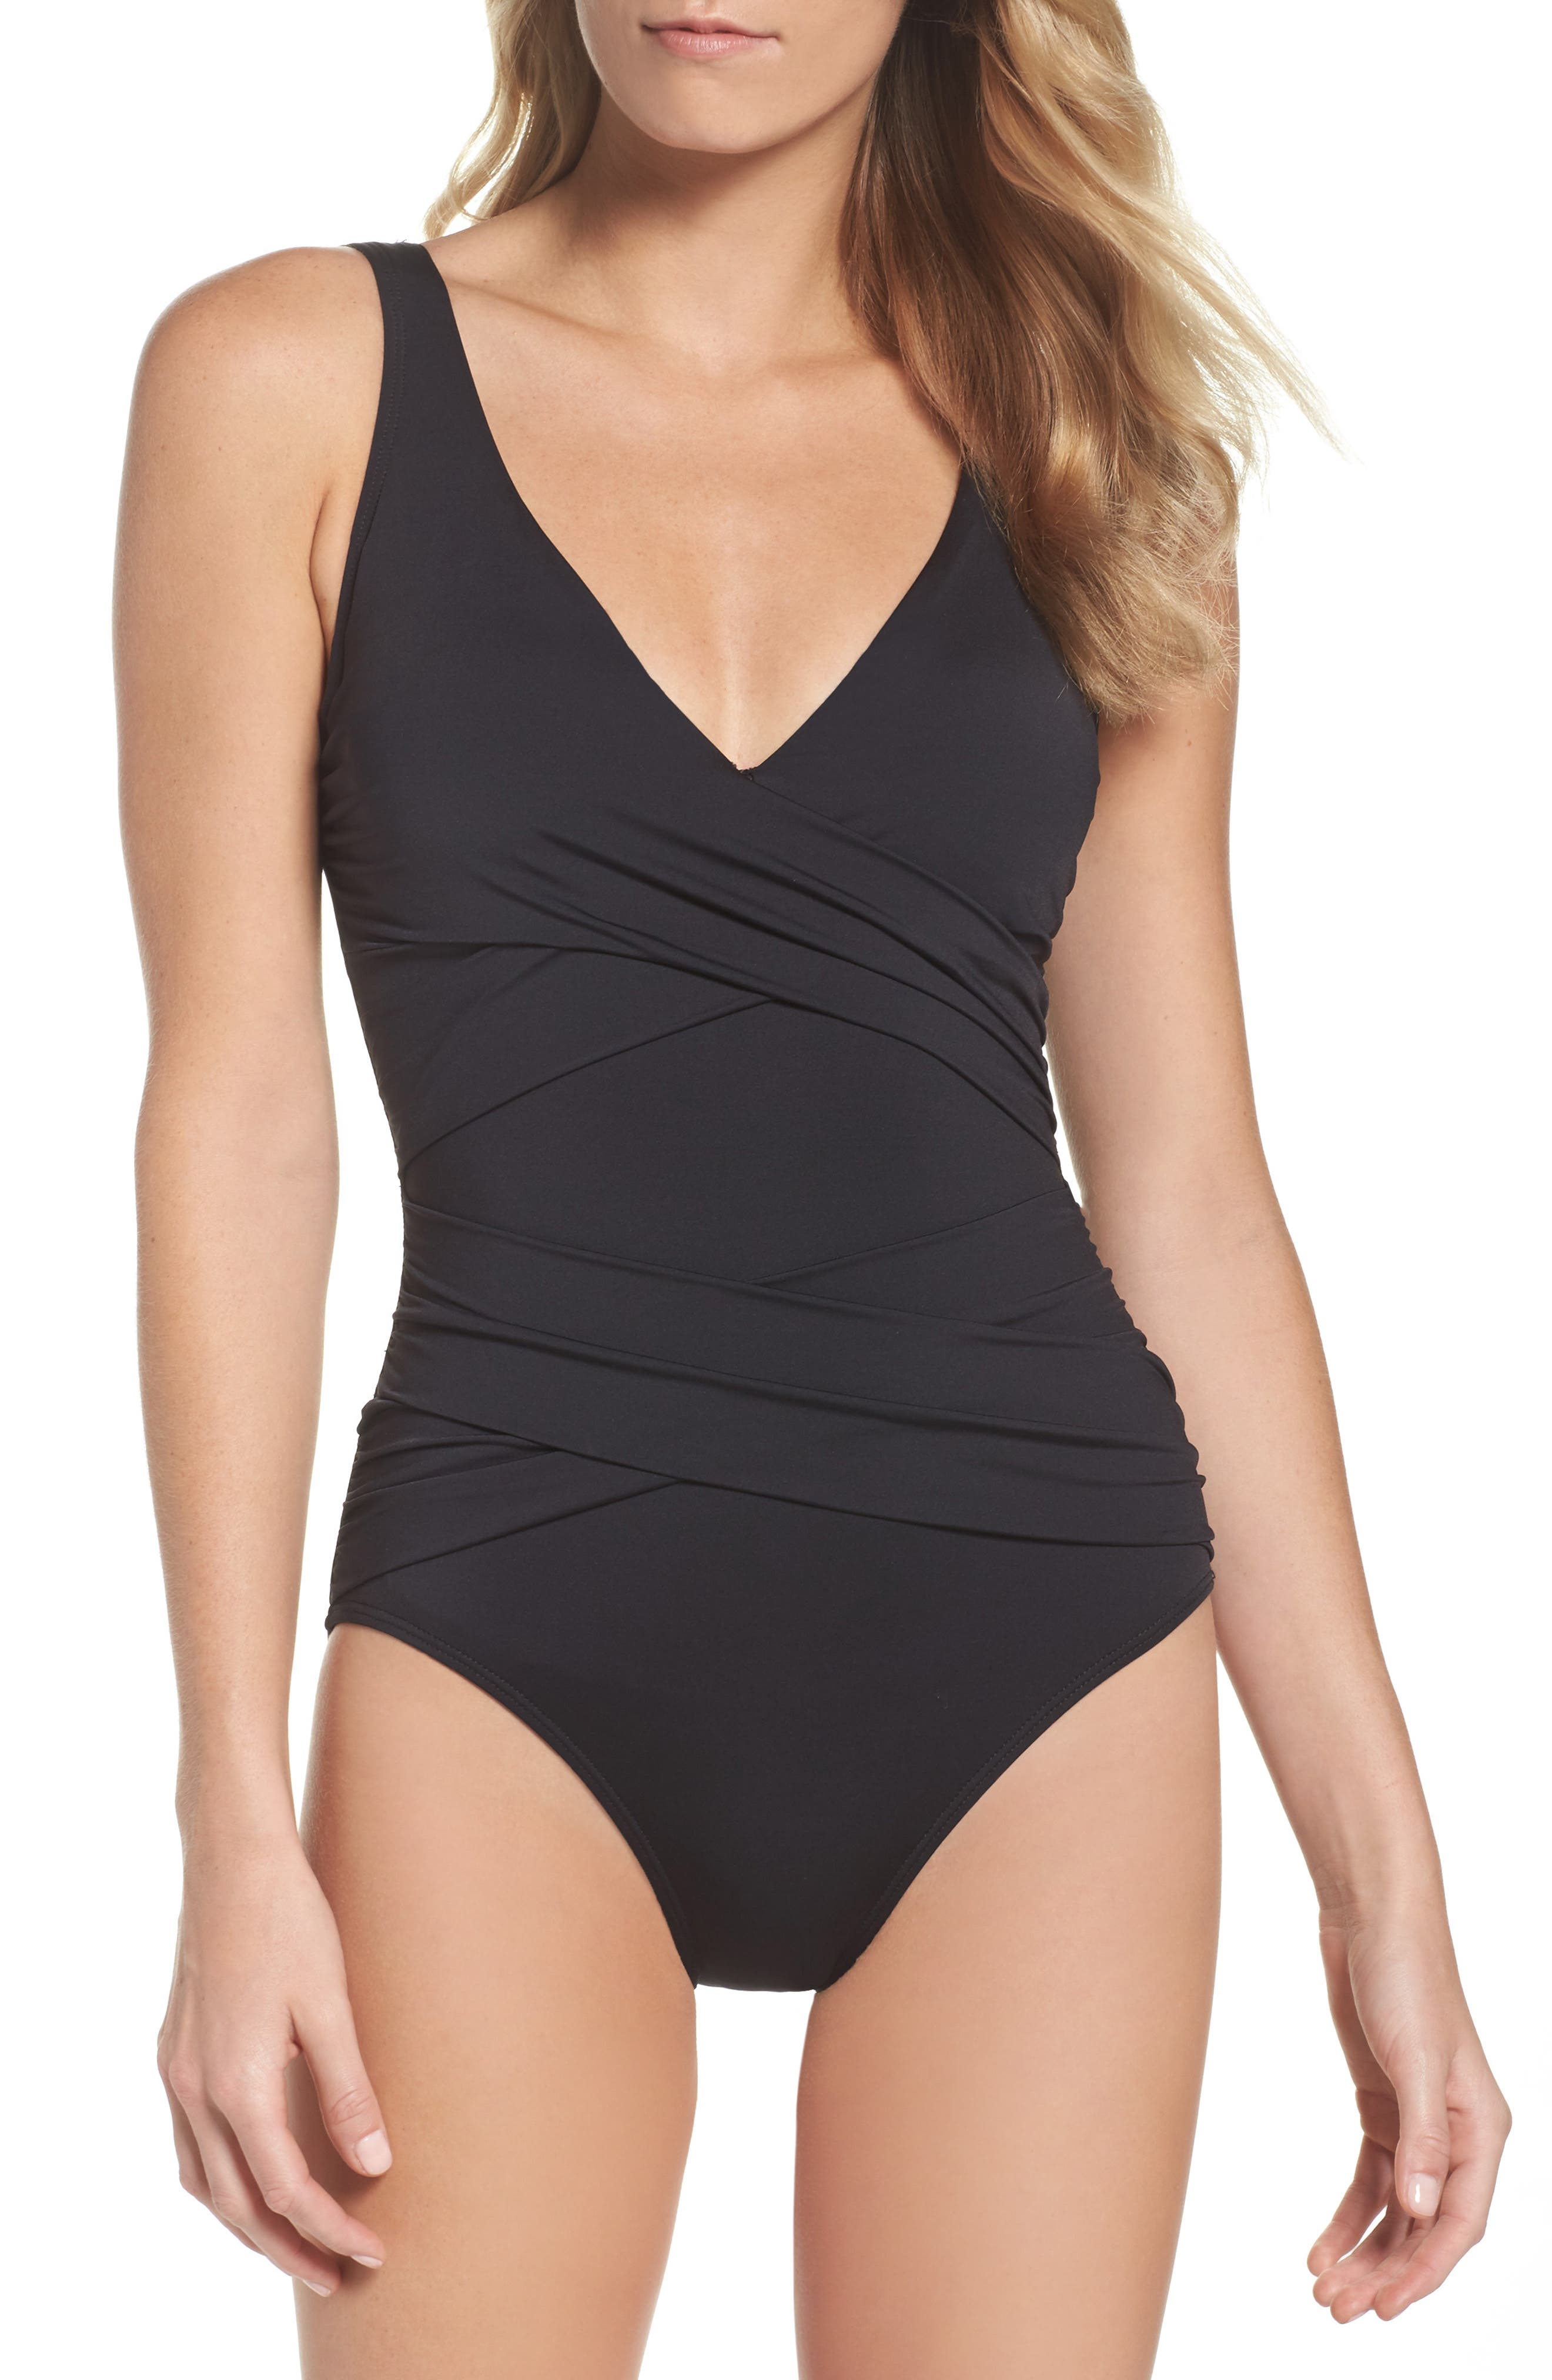 Pearl One-Piece Swimsuit,                             Main thumbnail 1, color,                             001